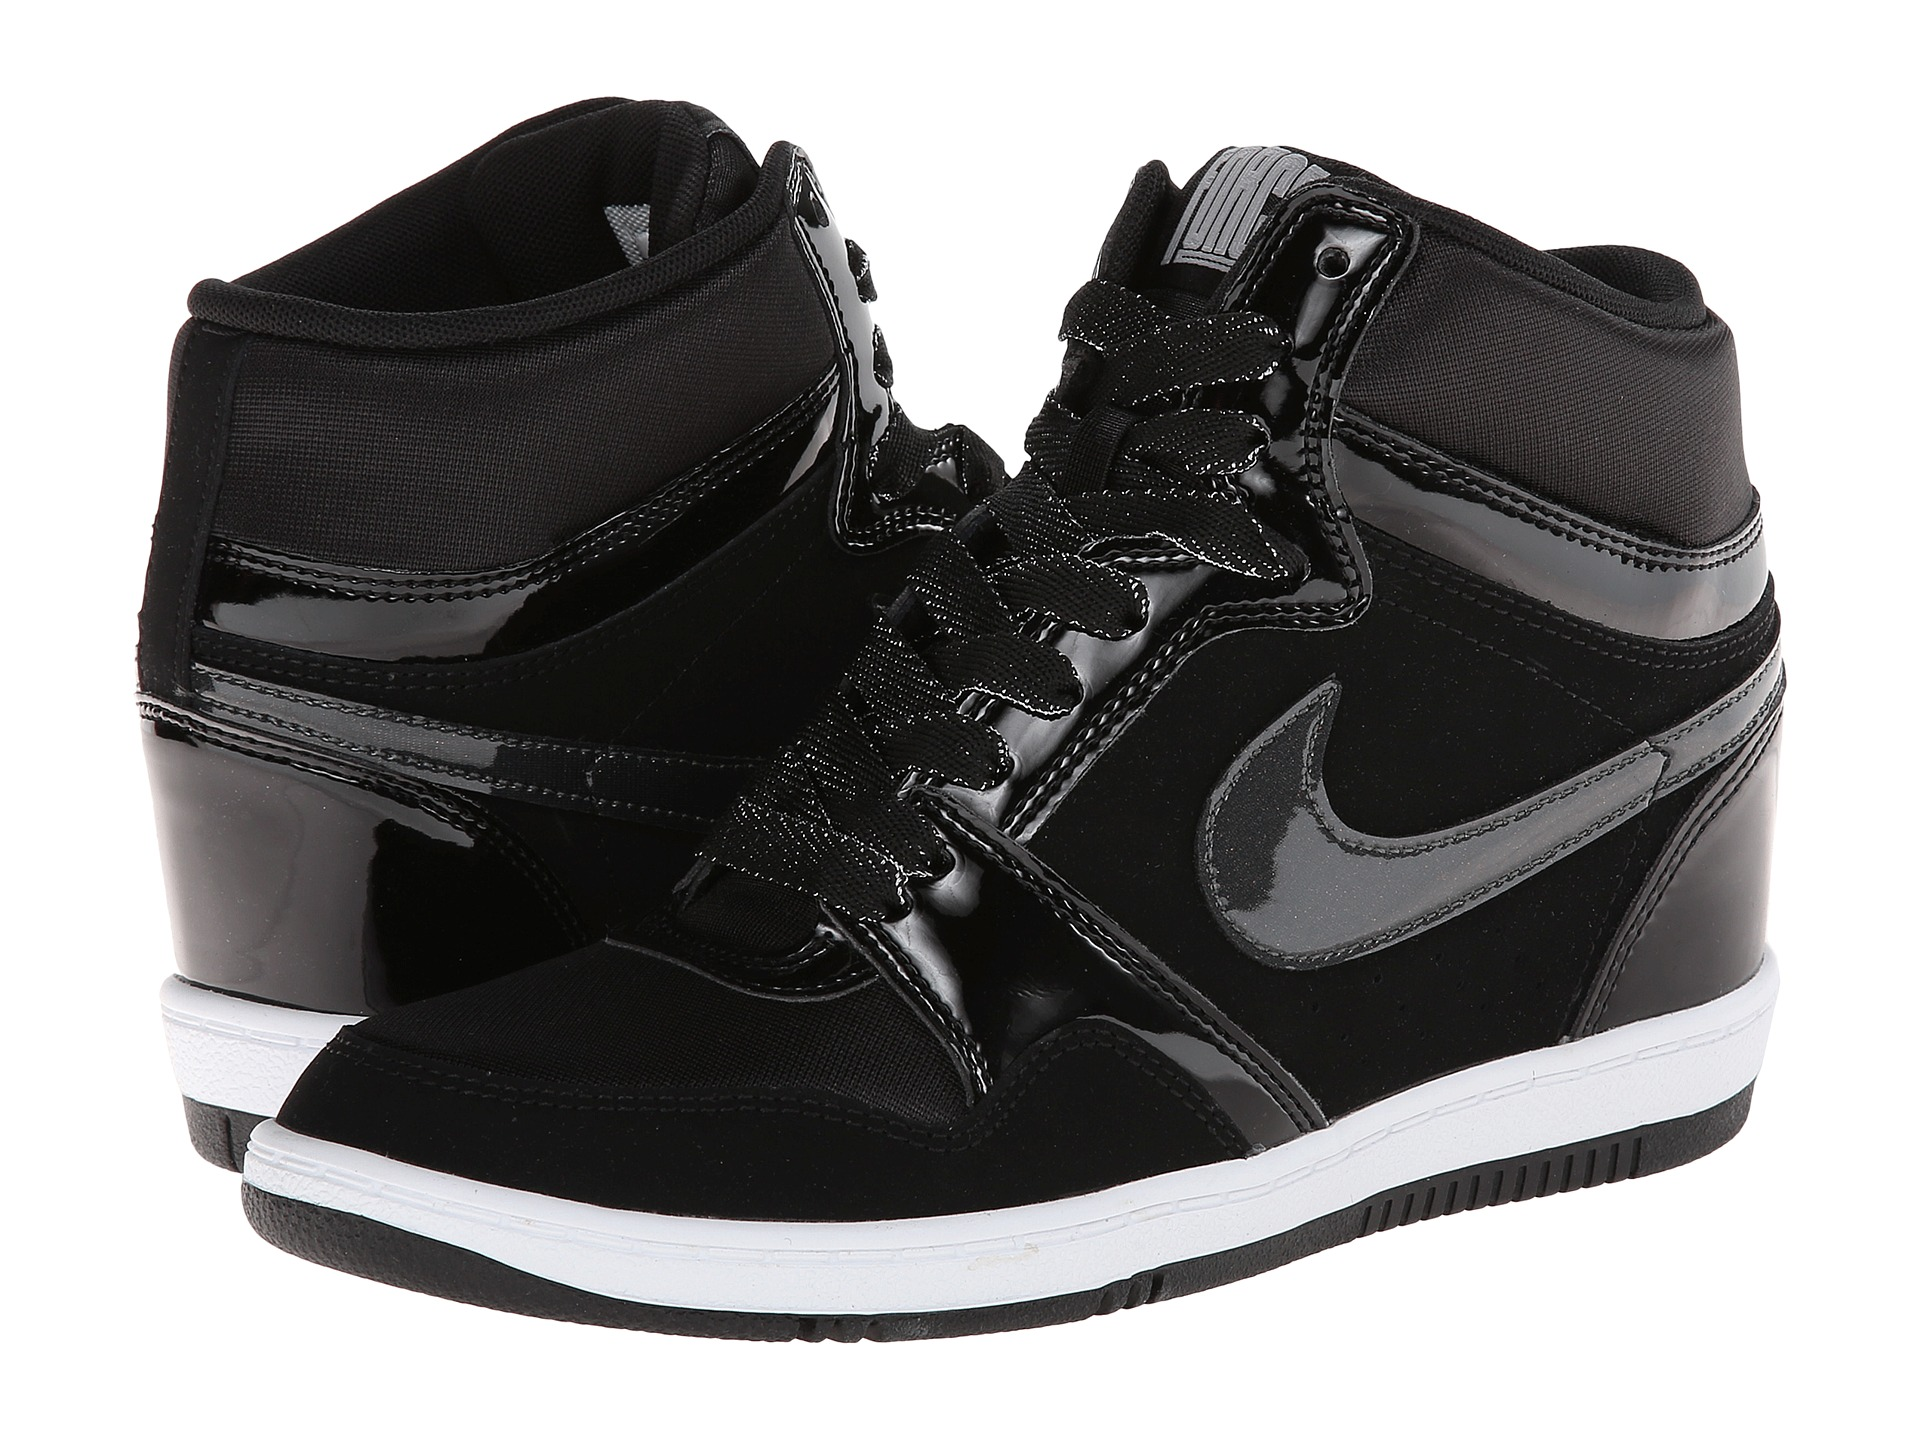 nike force sky high sneaker wedge free. Black Bedroom Furniture Sets. Home Design Ideas